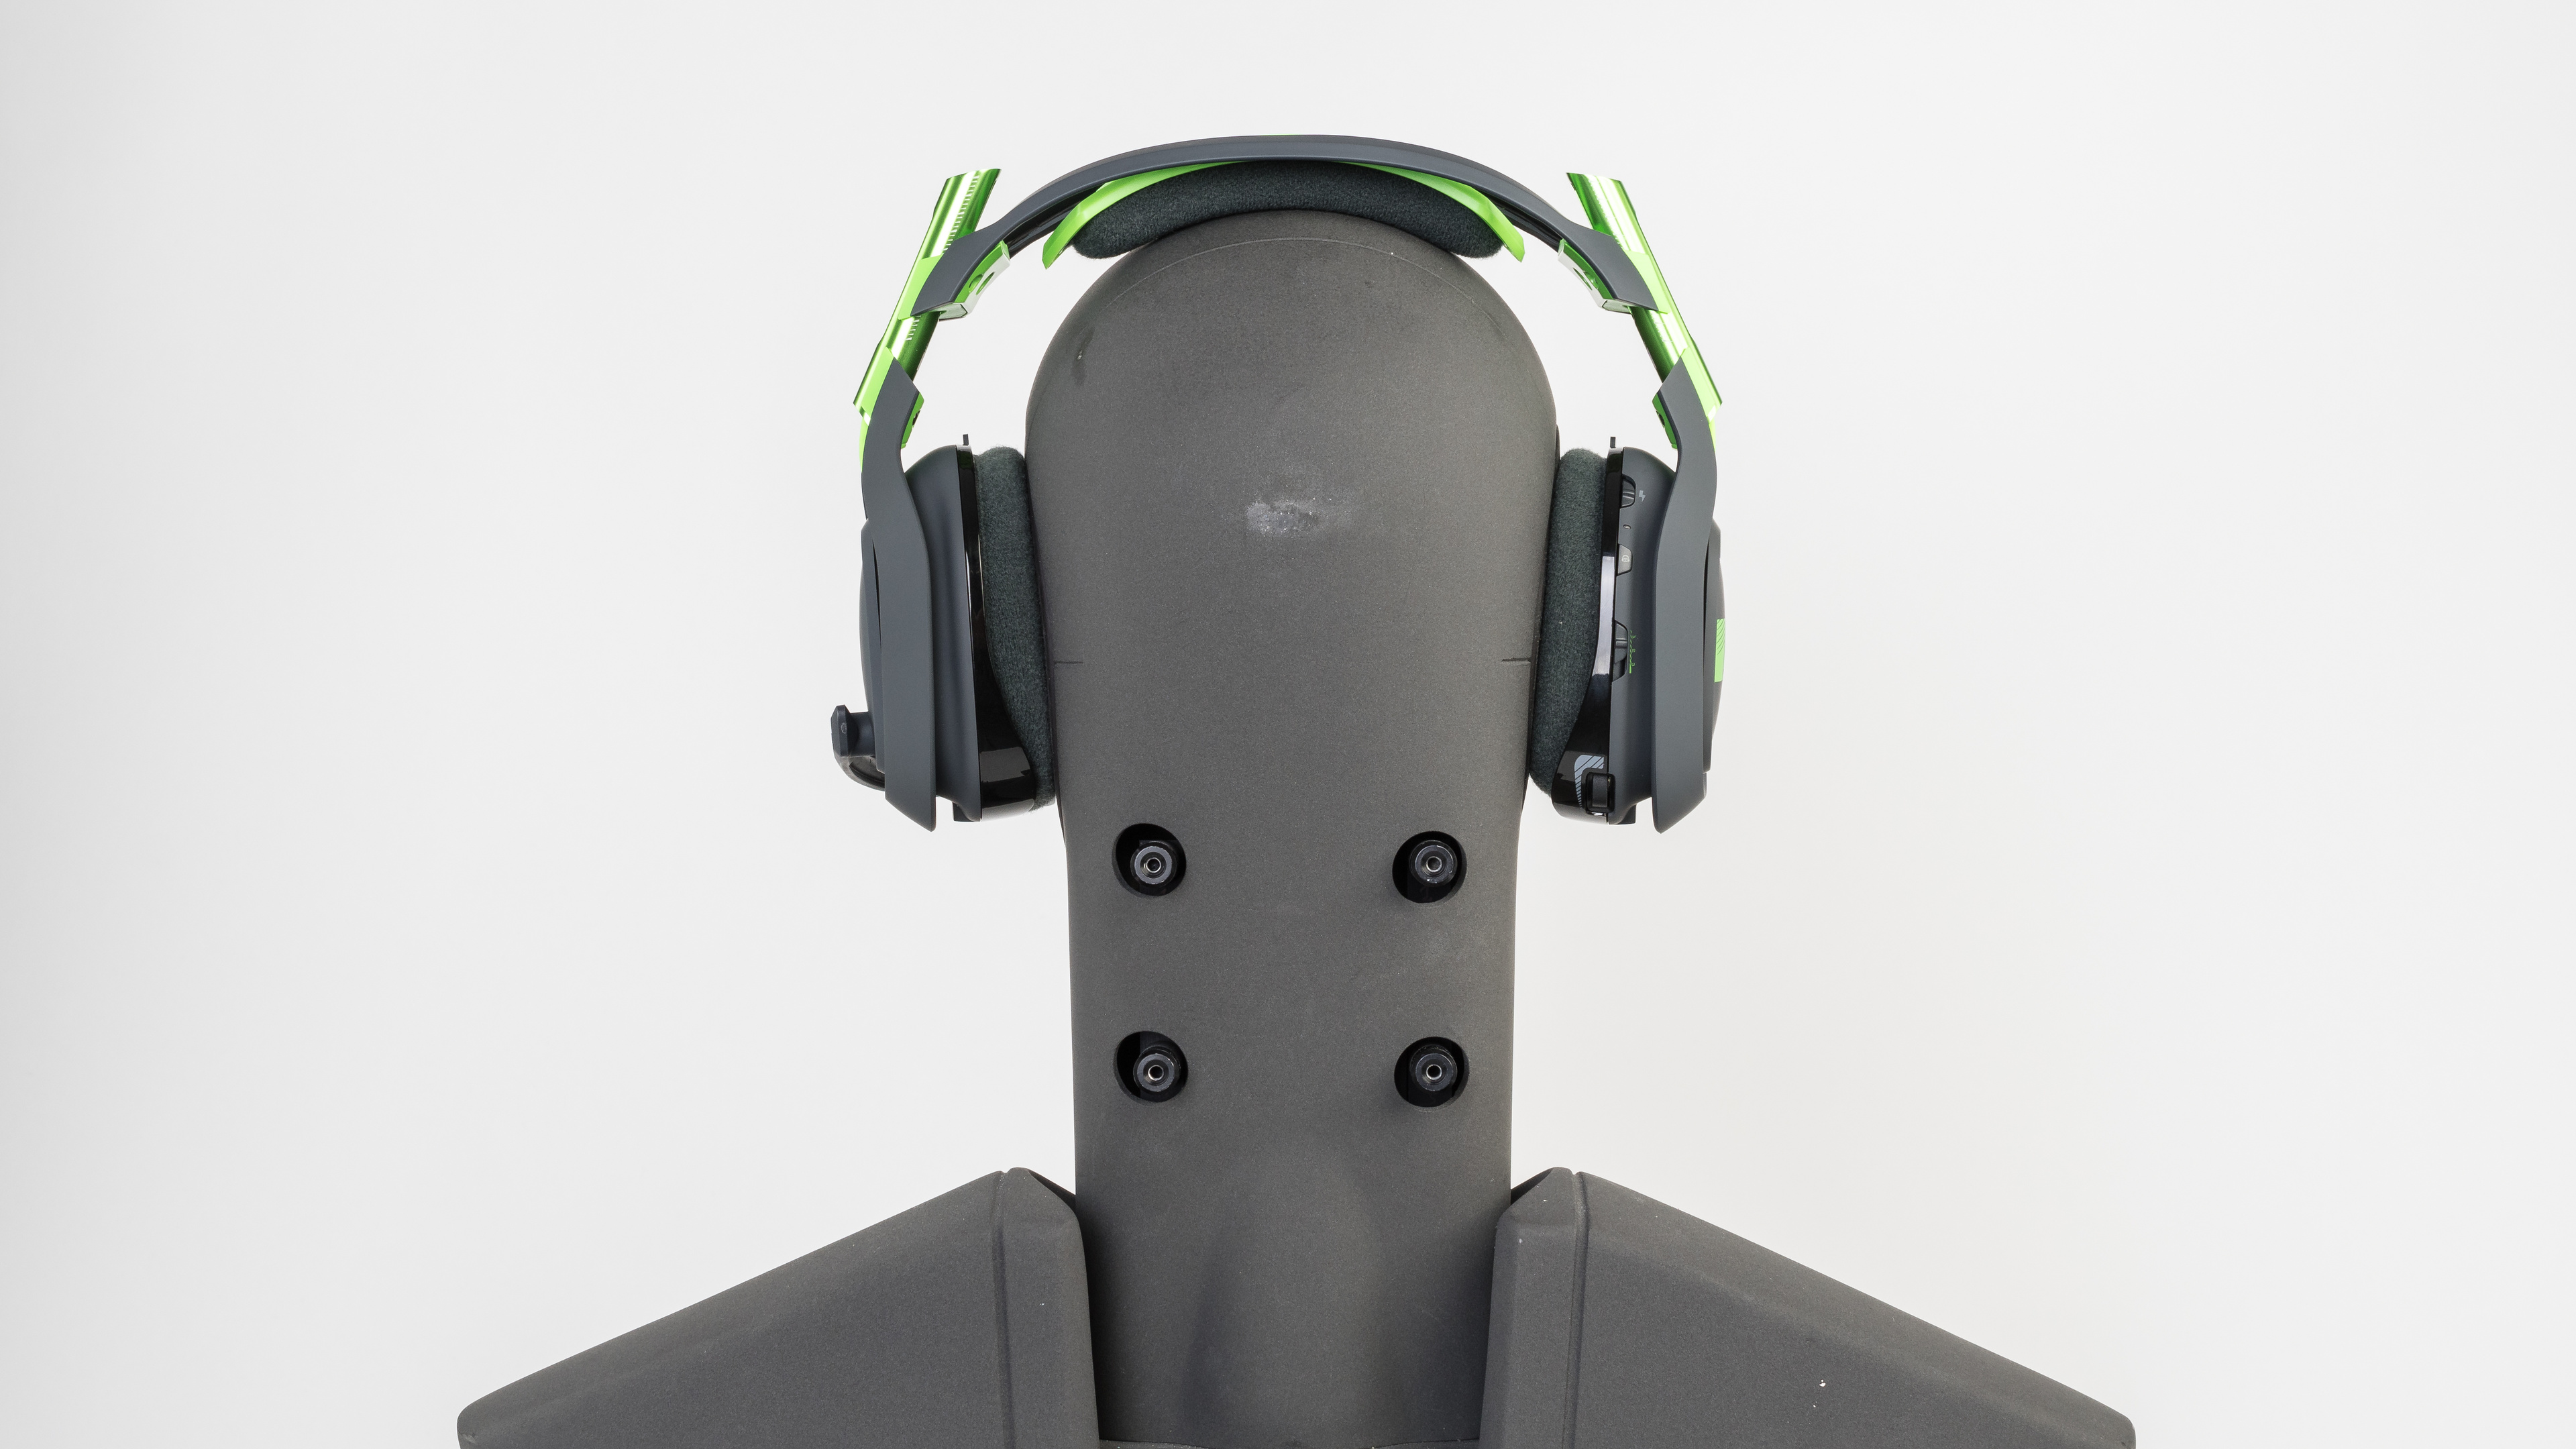 Astro A50 Wireless Gaming Headset For Xbox One Review